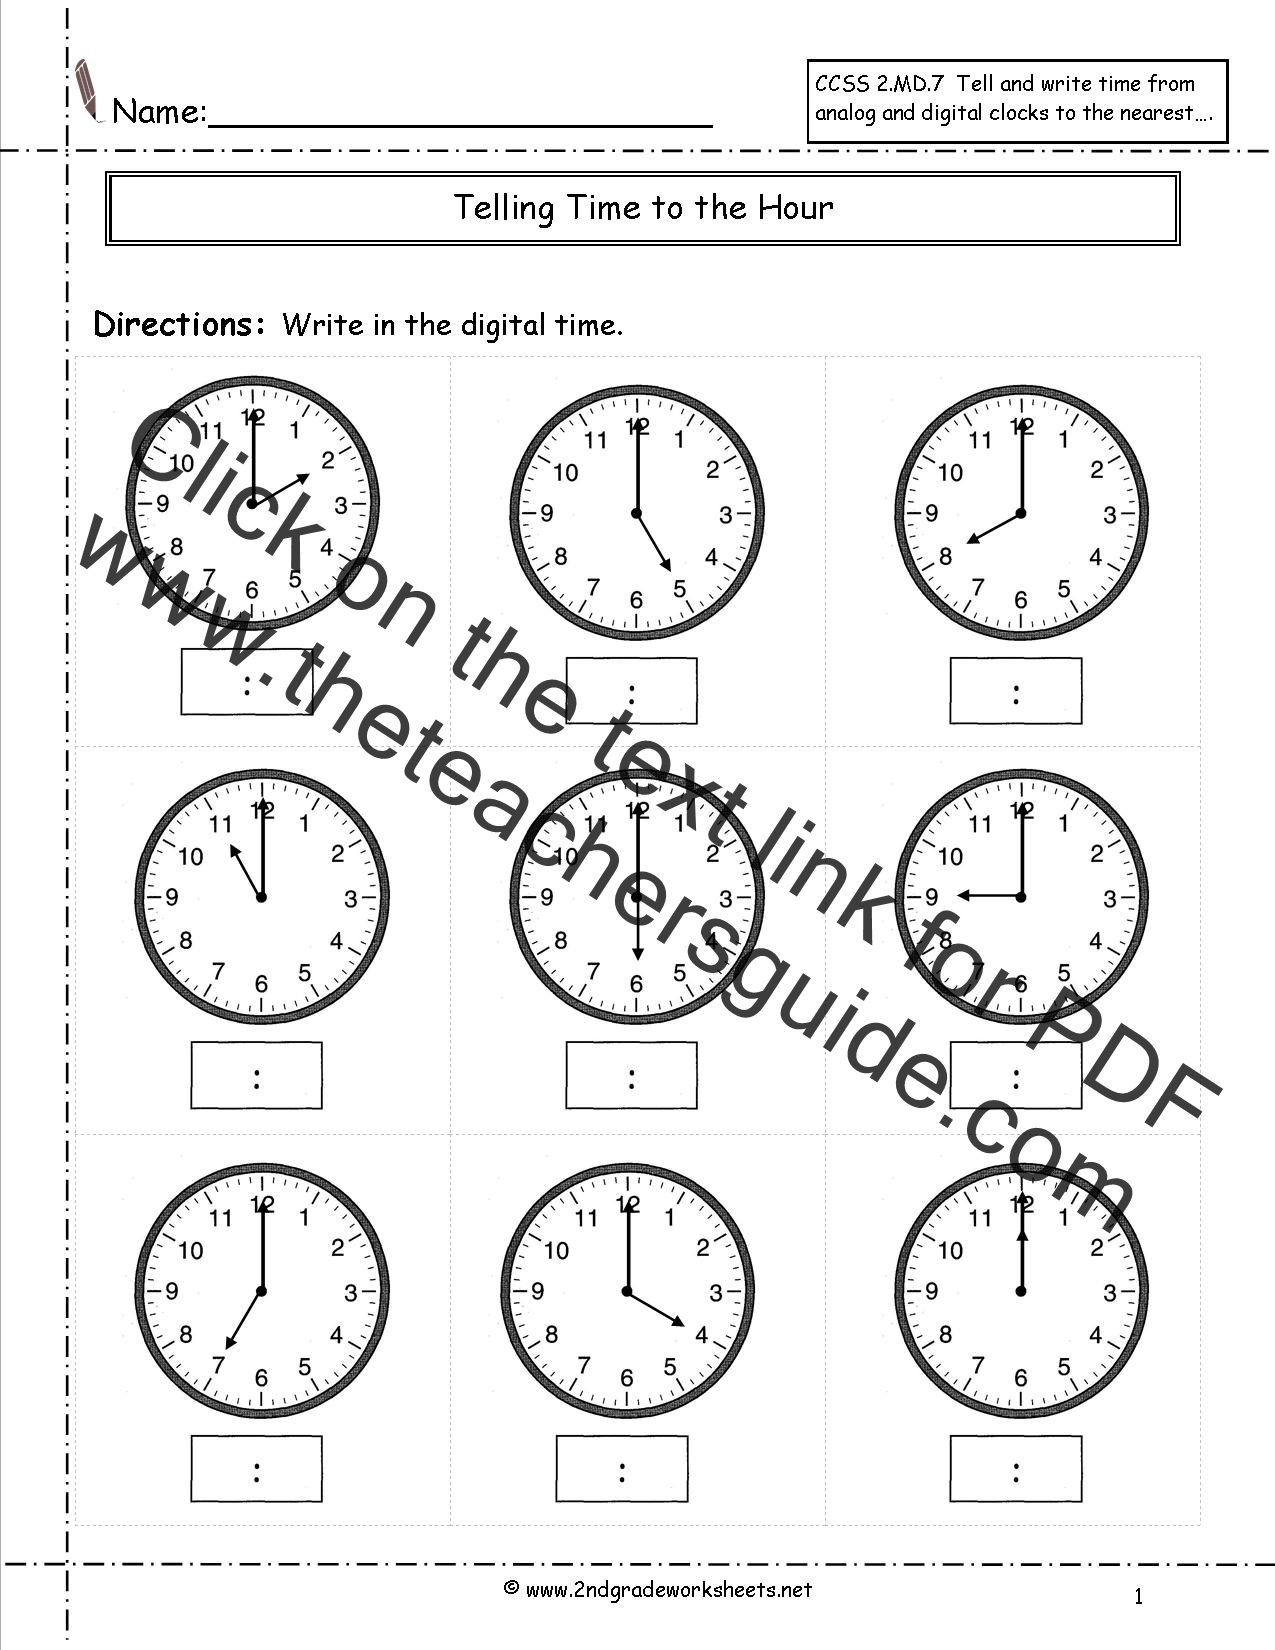 Printables Telling Time Worksheets telling and writing time worksheets to hour worksheet